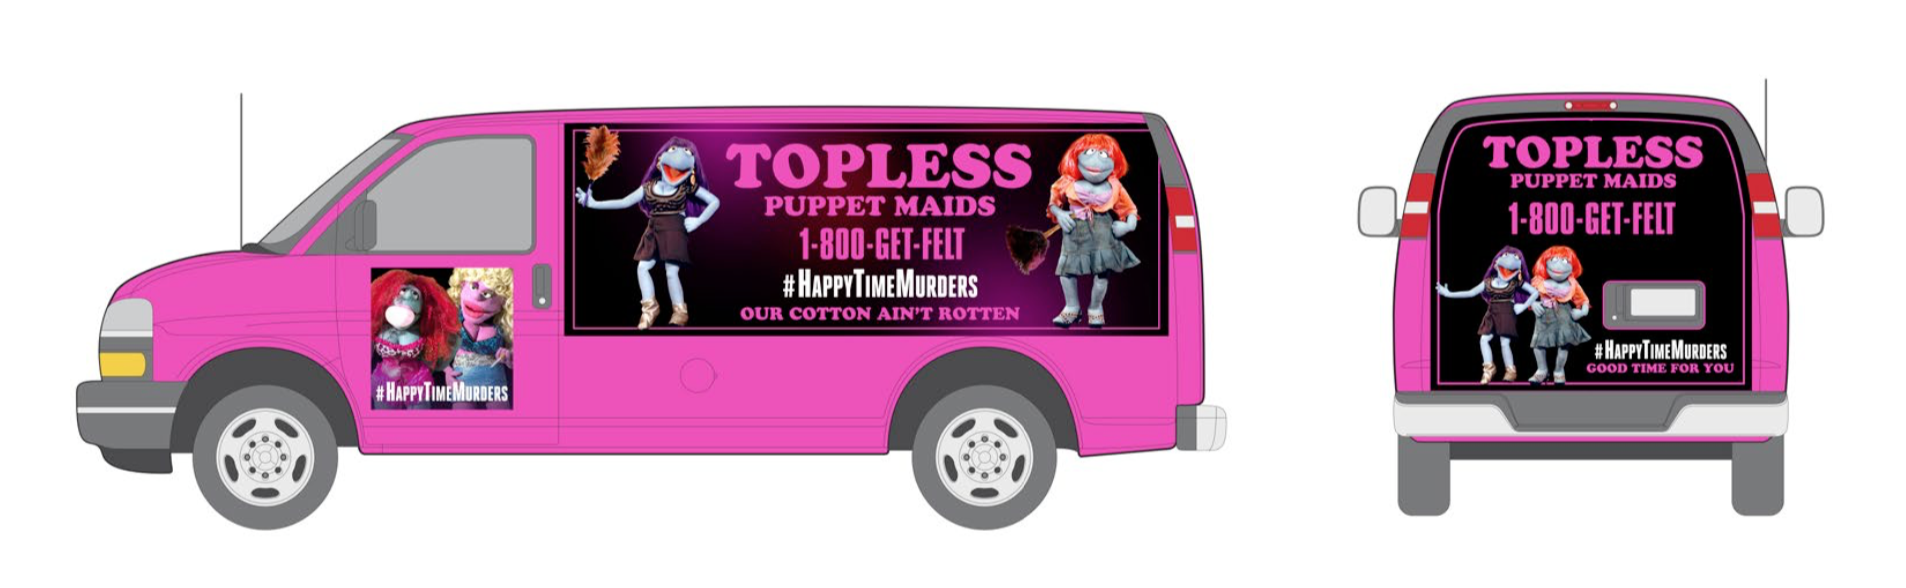 Topless Puppet Maids Mobile Truck Advertising.